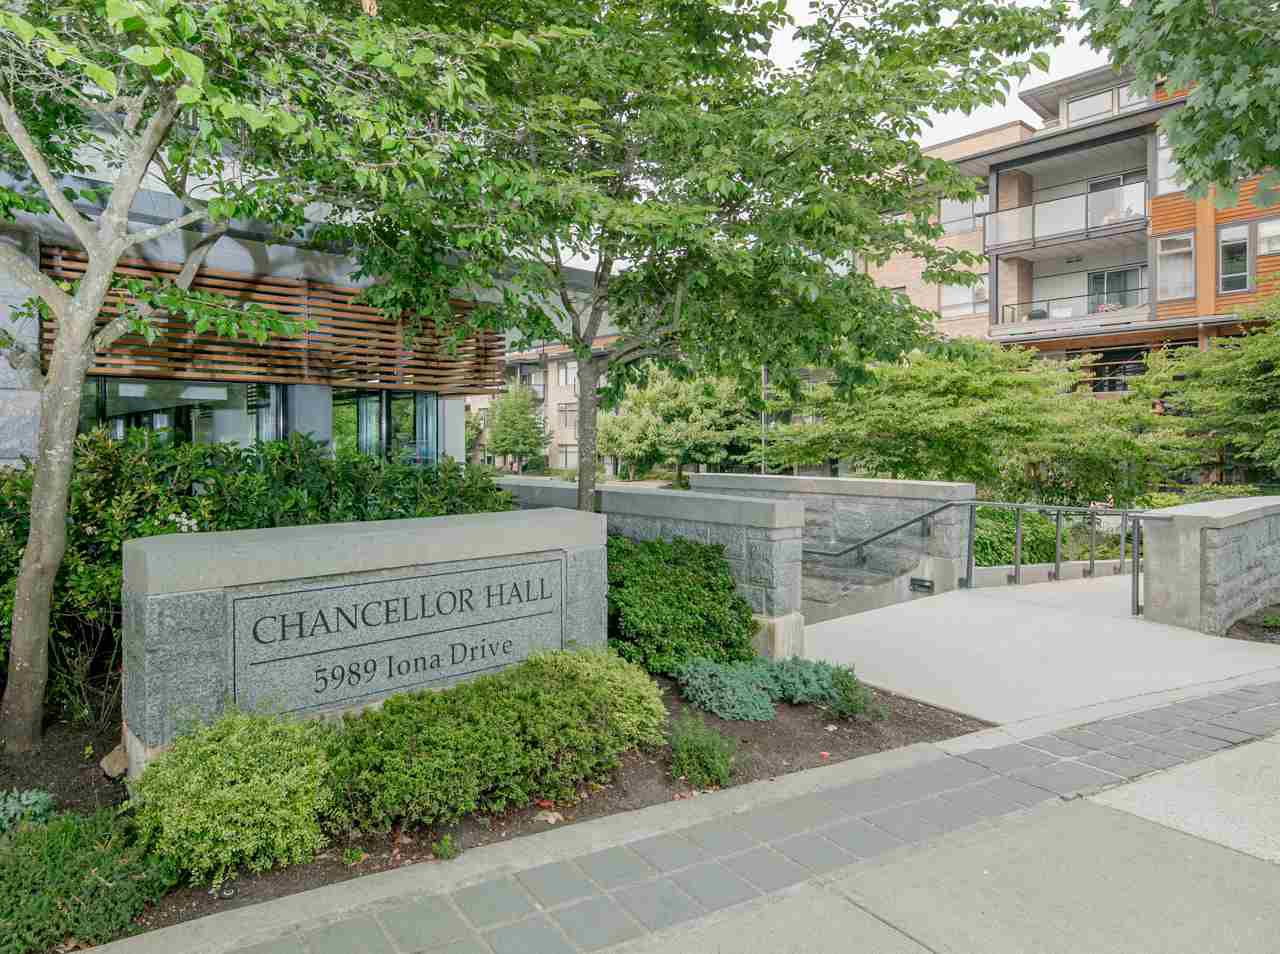 """Main Photo: 307 5989 IONA Drive in Vancouver: University VW Condo for sale in """"Chancellor Hall"""" (Vancouver West)  : MLS®# R2194182"""